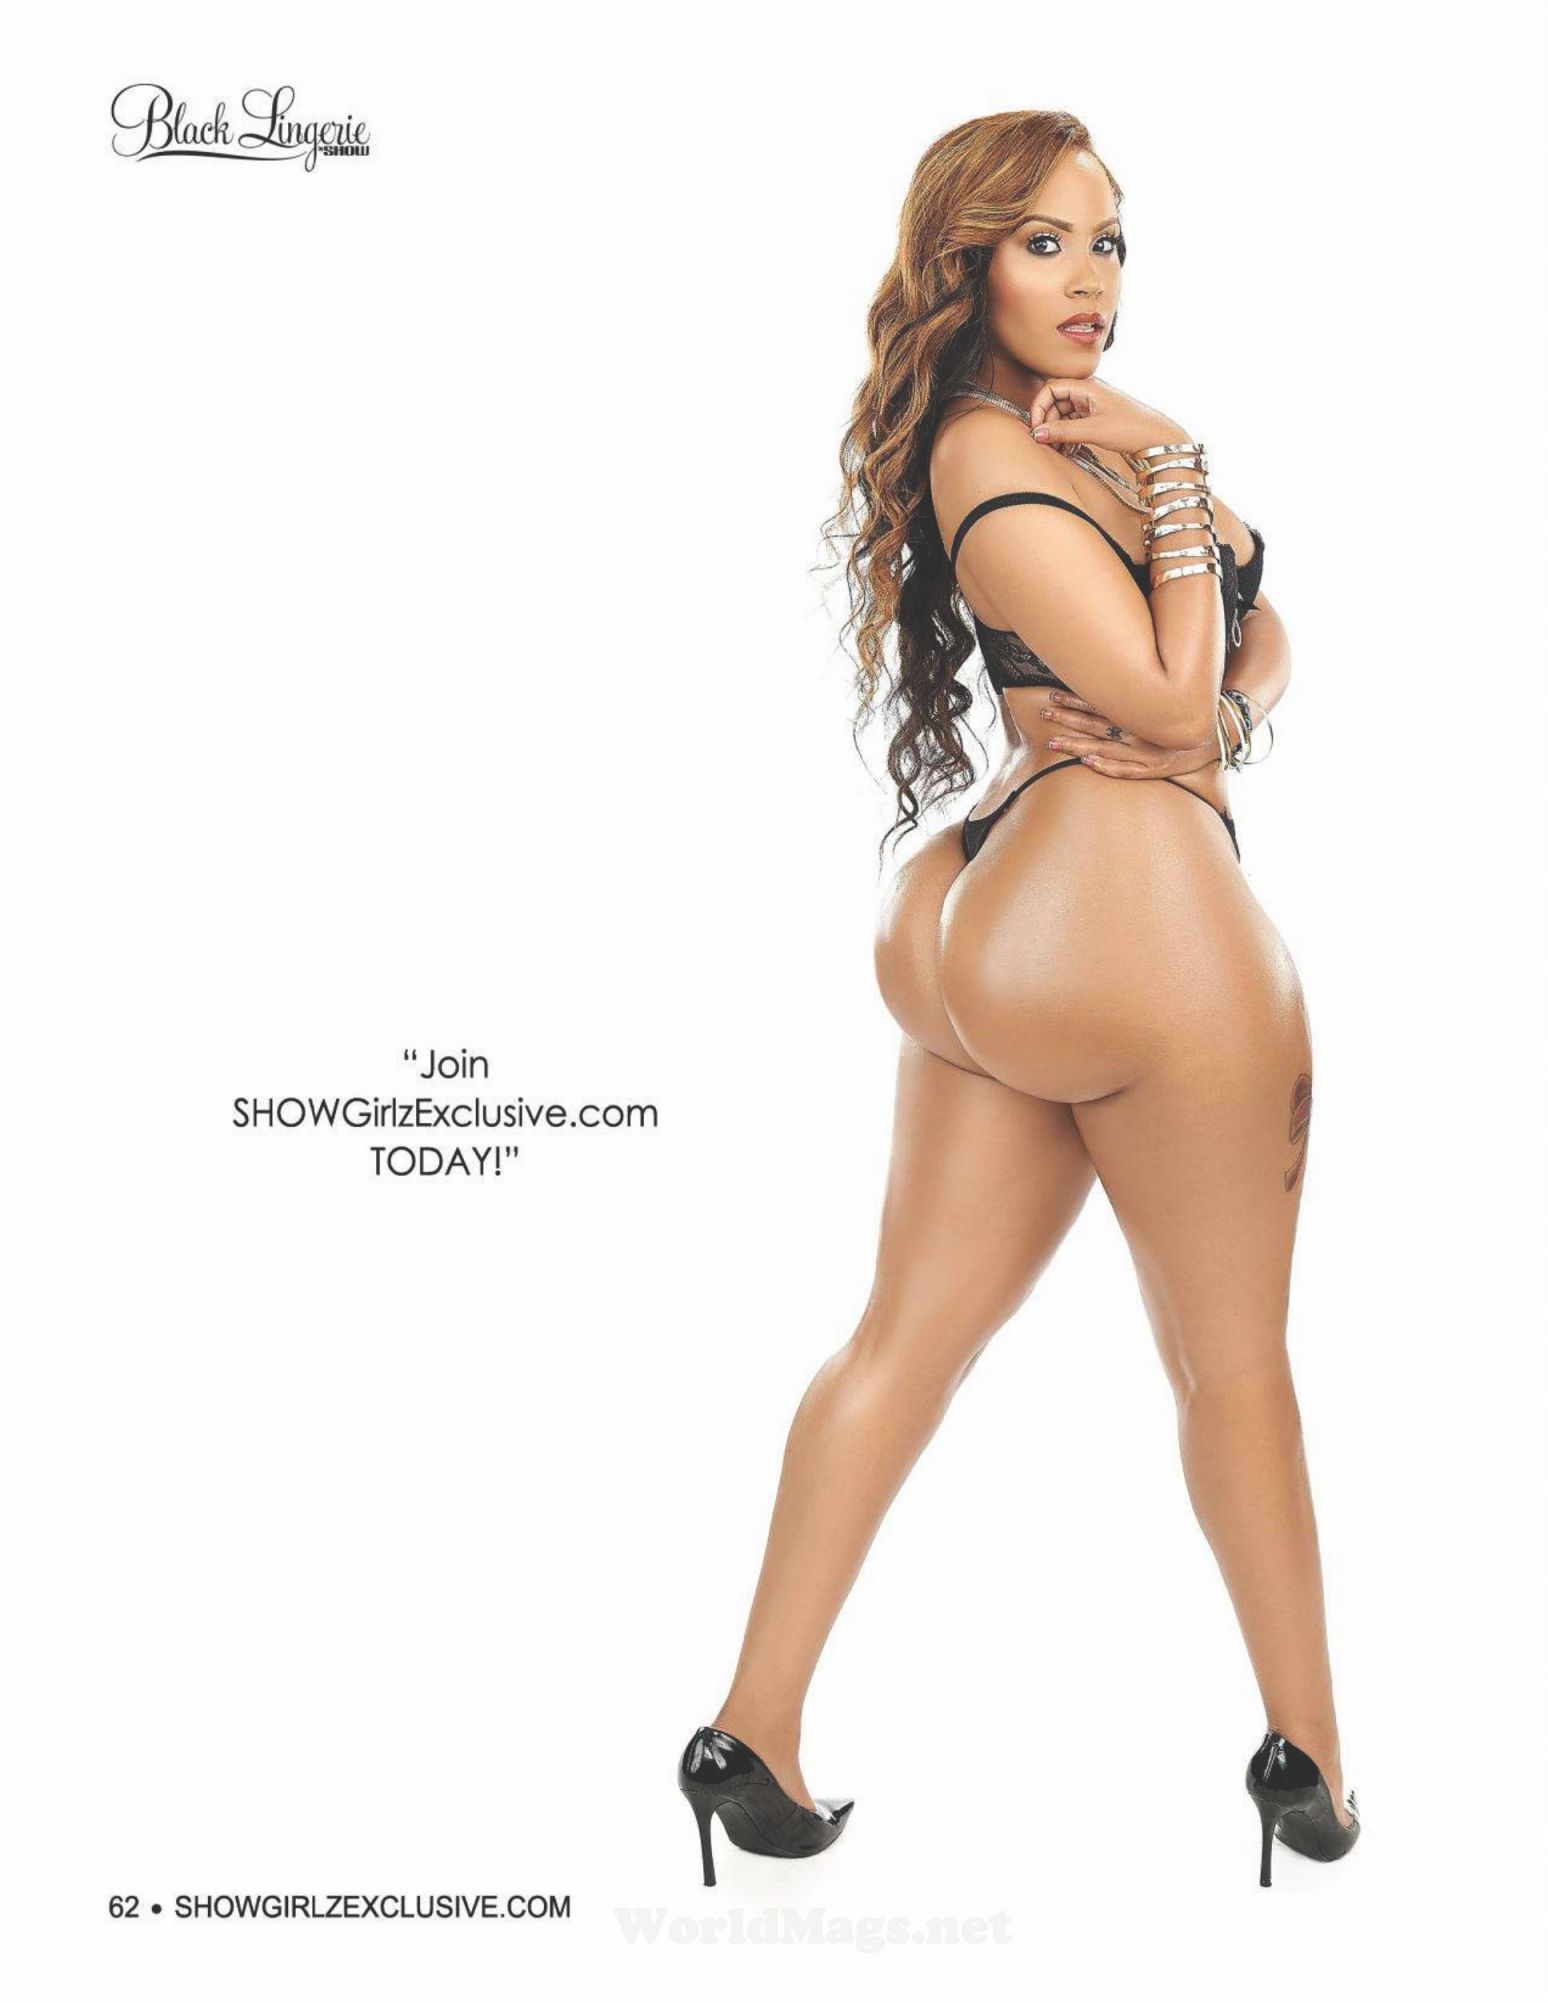 100% Free Dating | File Search Engine | Mega.co.nz Search | 4Shared ...: www.turboimagehost.com/p/23495833/mizz_DR_black_lingerie_Iss_25.2...